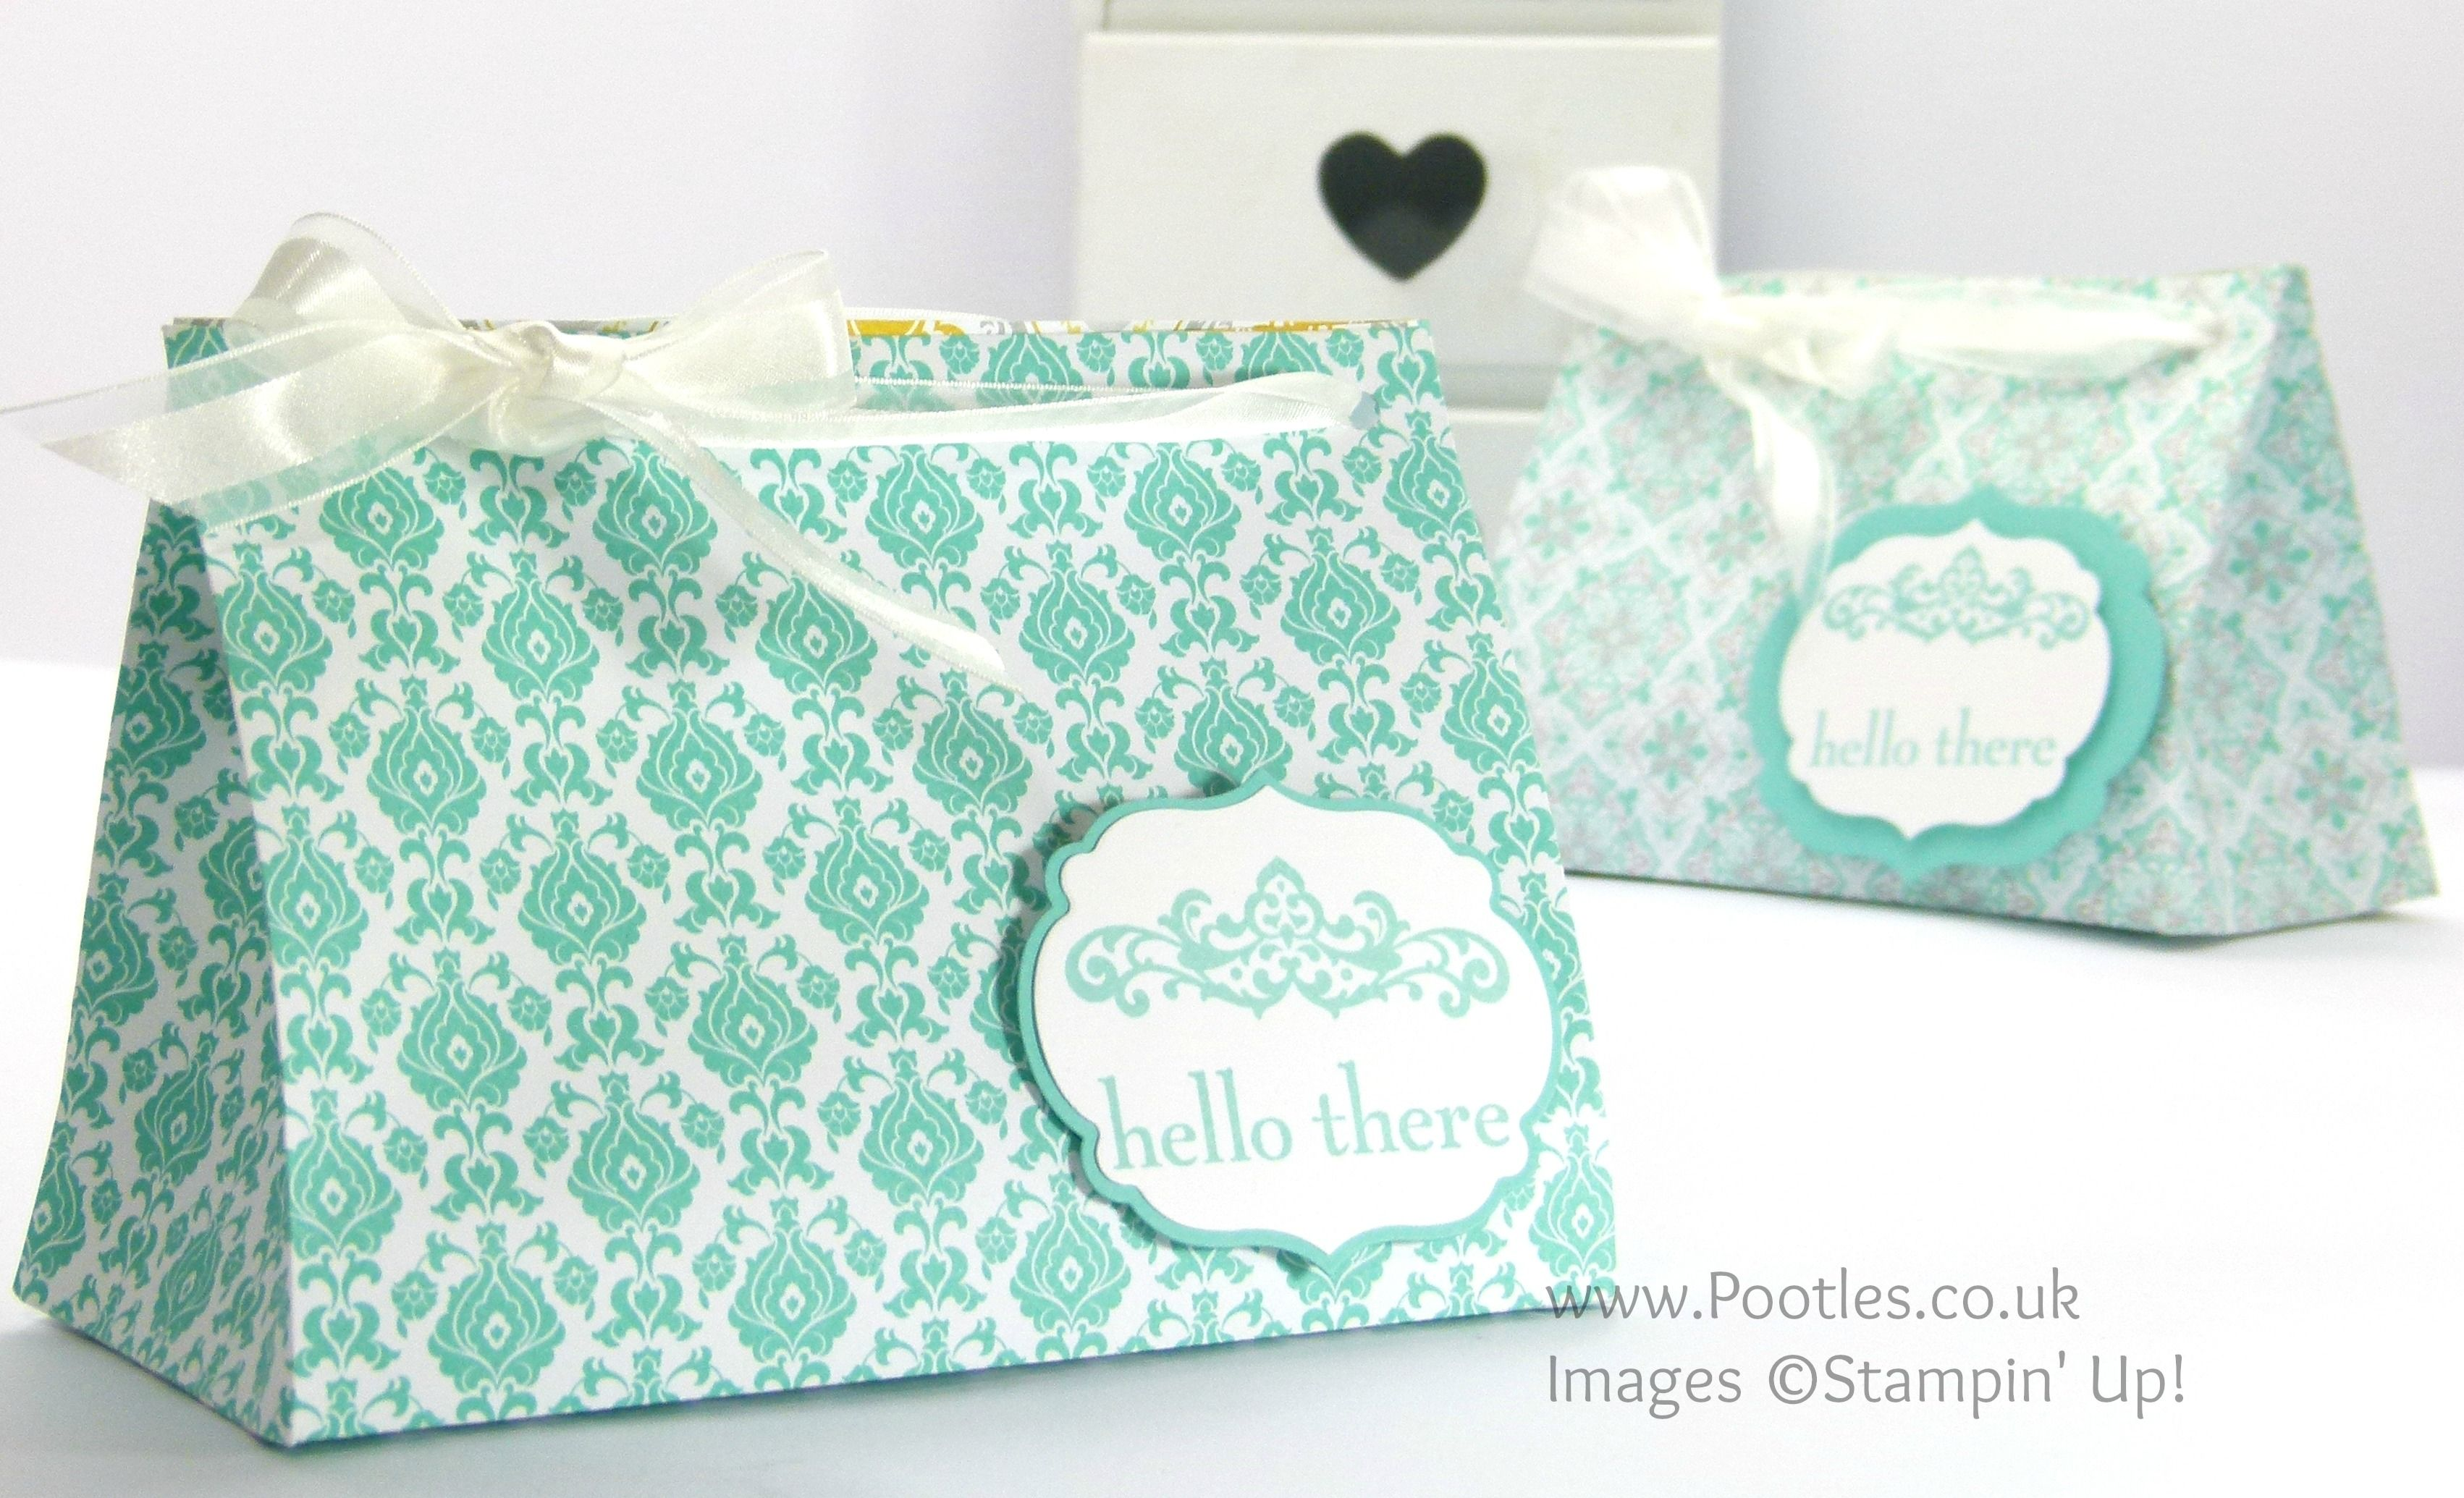 Wide Fat Bag using Stampin' Up! UK Eastern Elegance DSP